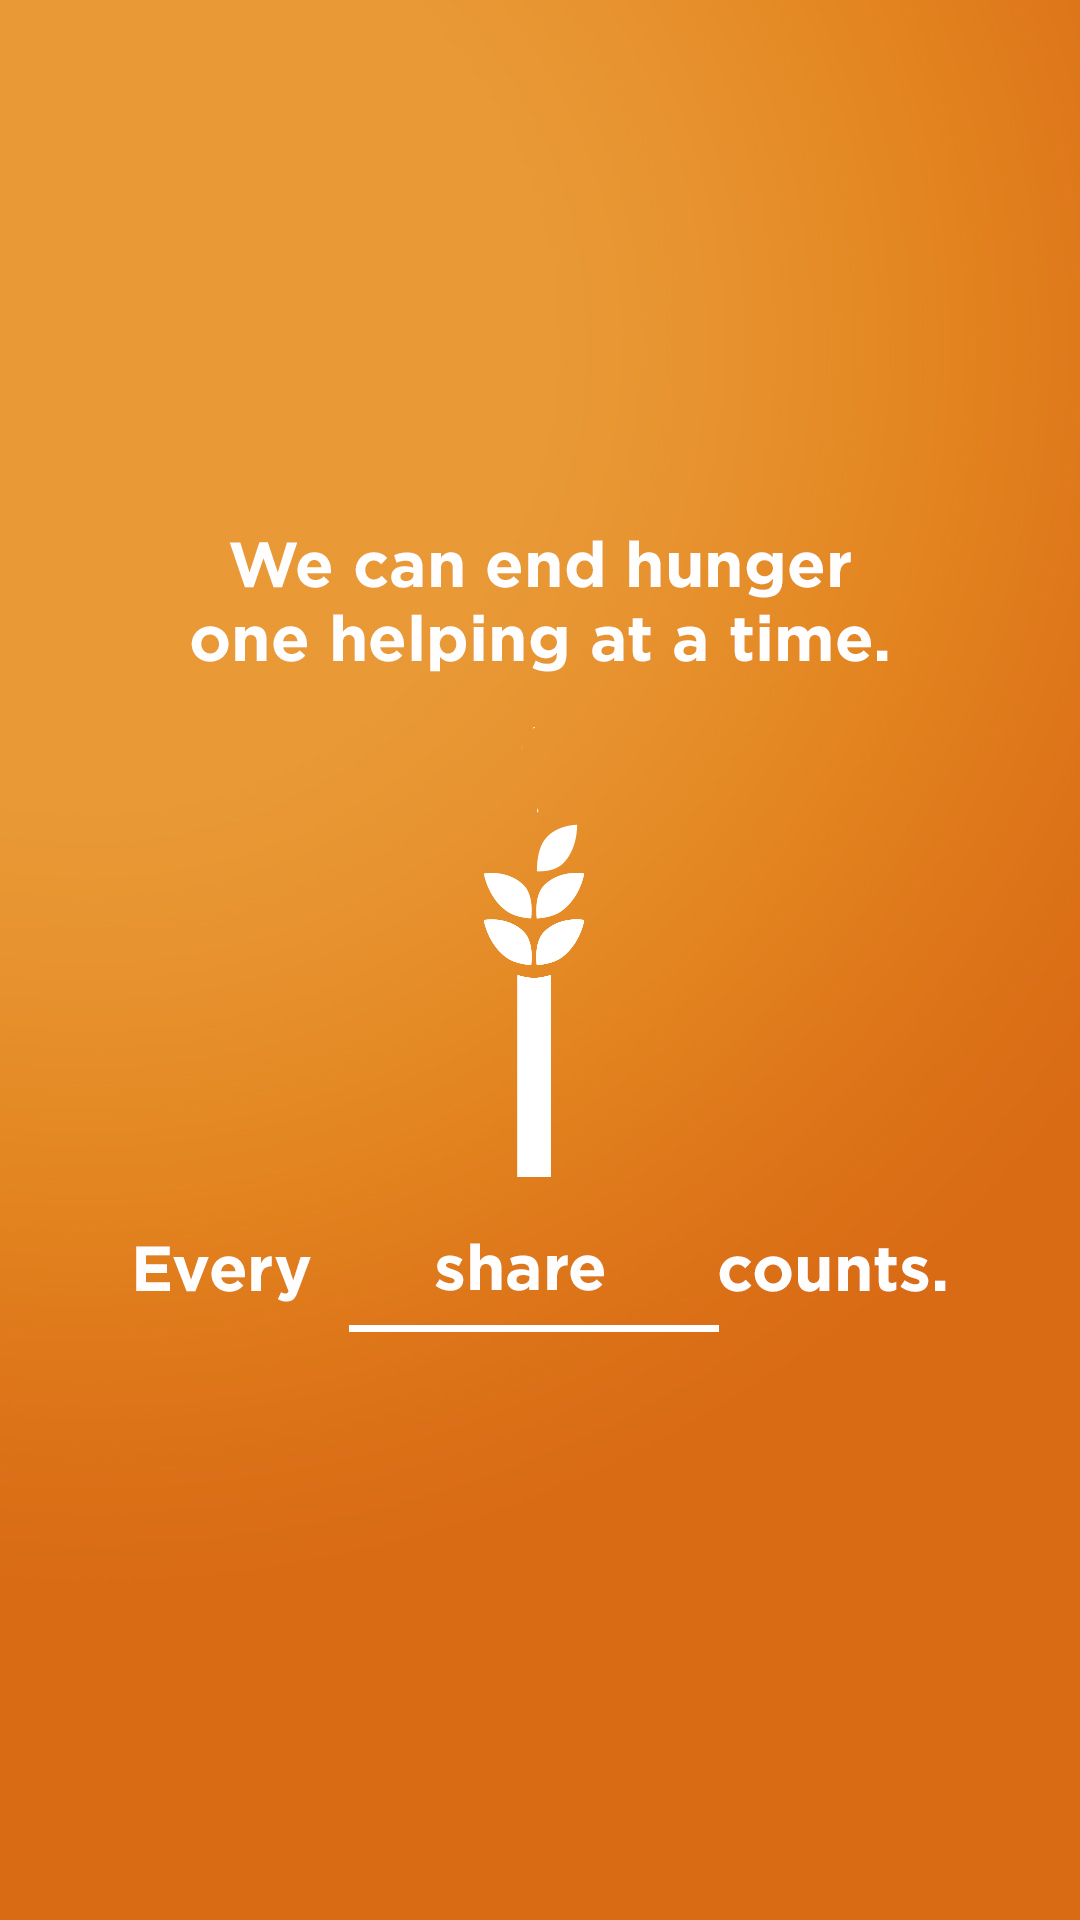 We can end hunger - share